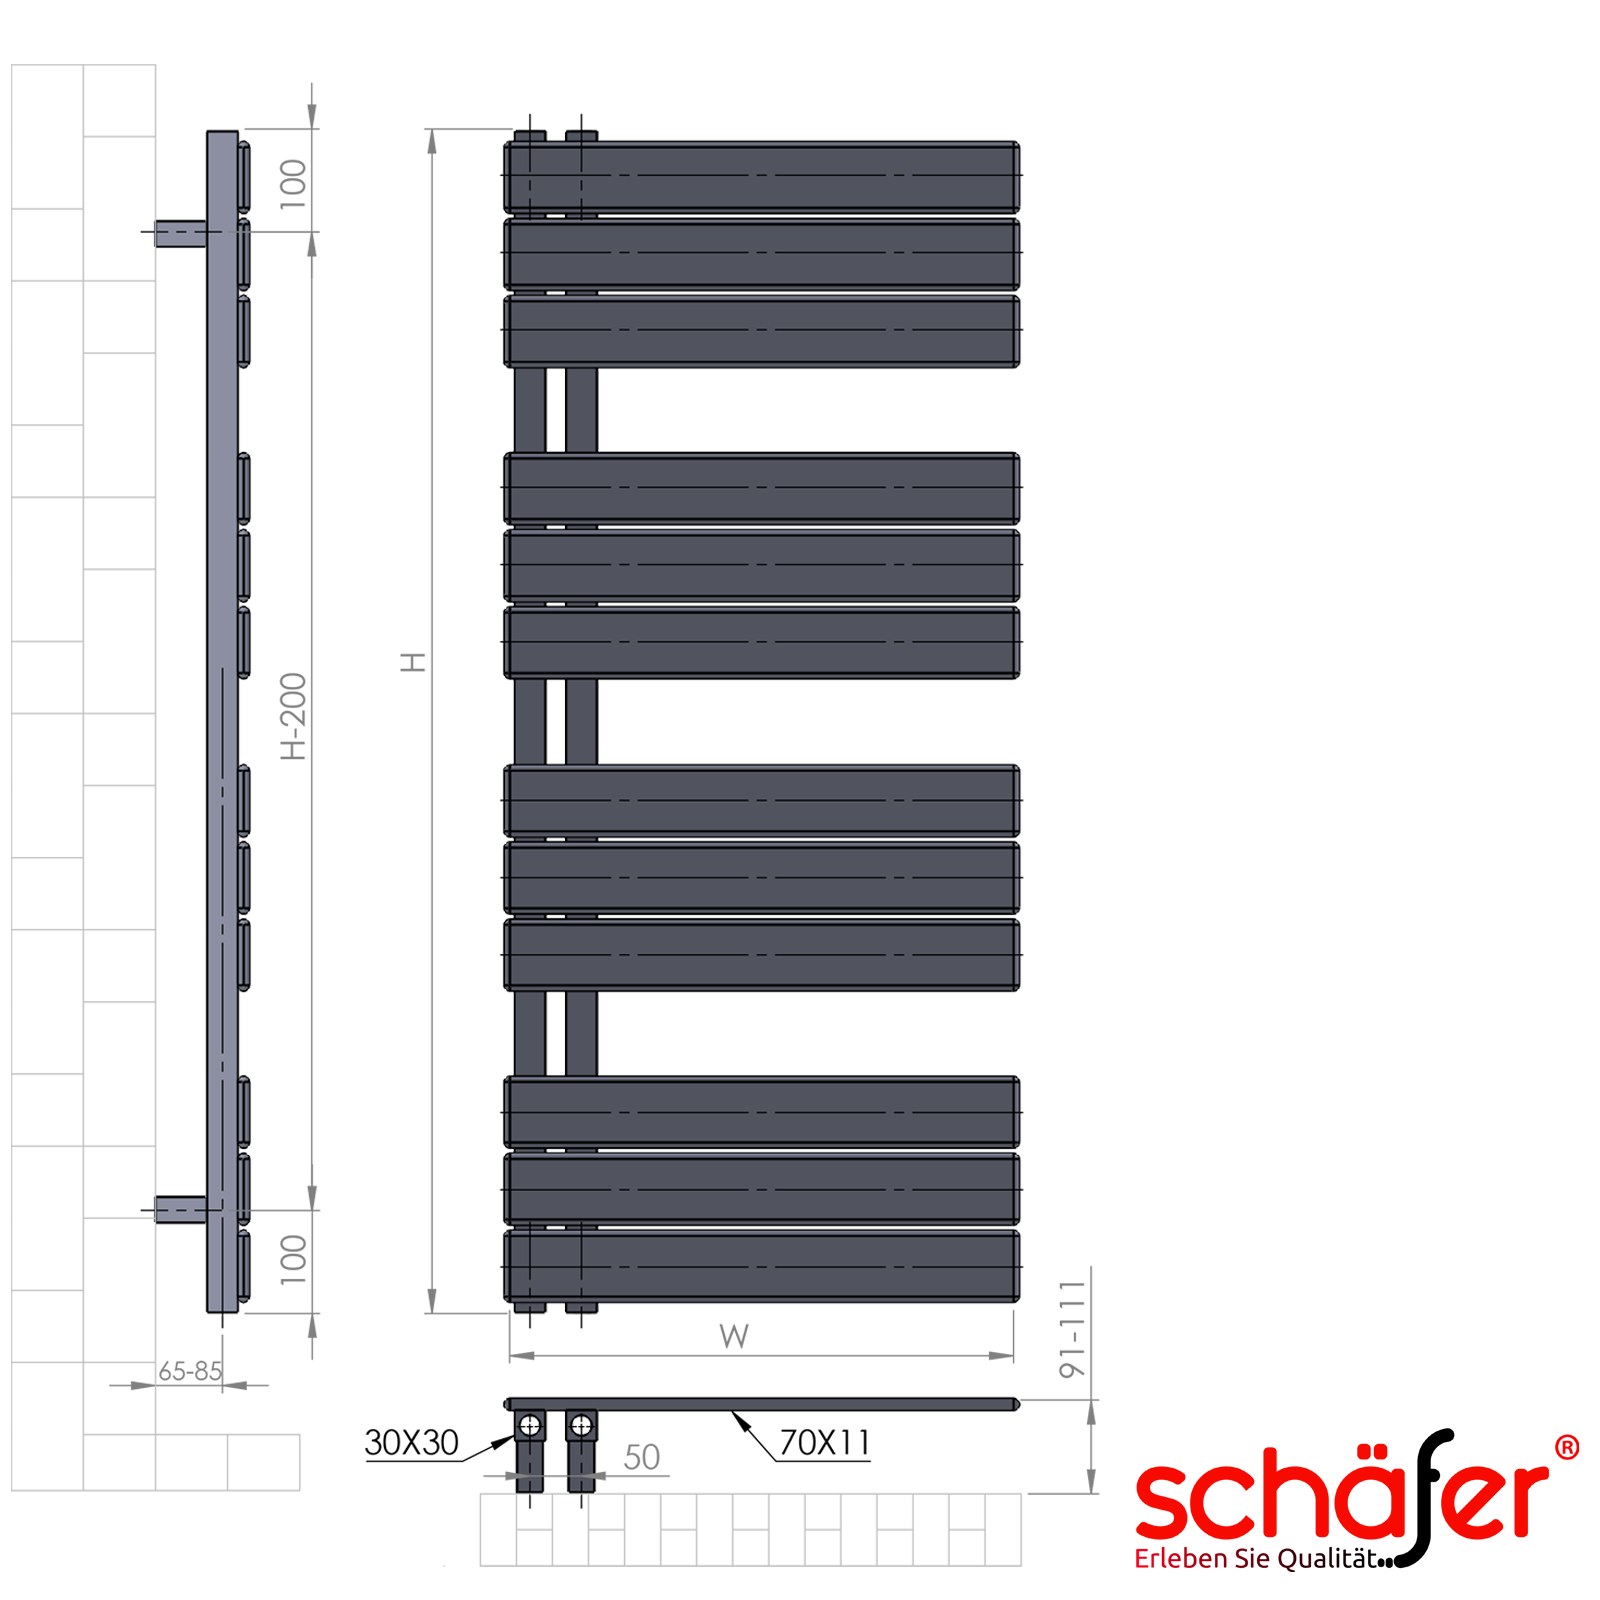 ELEKTRISCHE Design Badheizk/örper ELANOR 500 x 1150 mm, Anthrazit